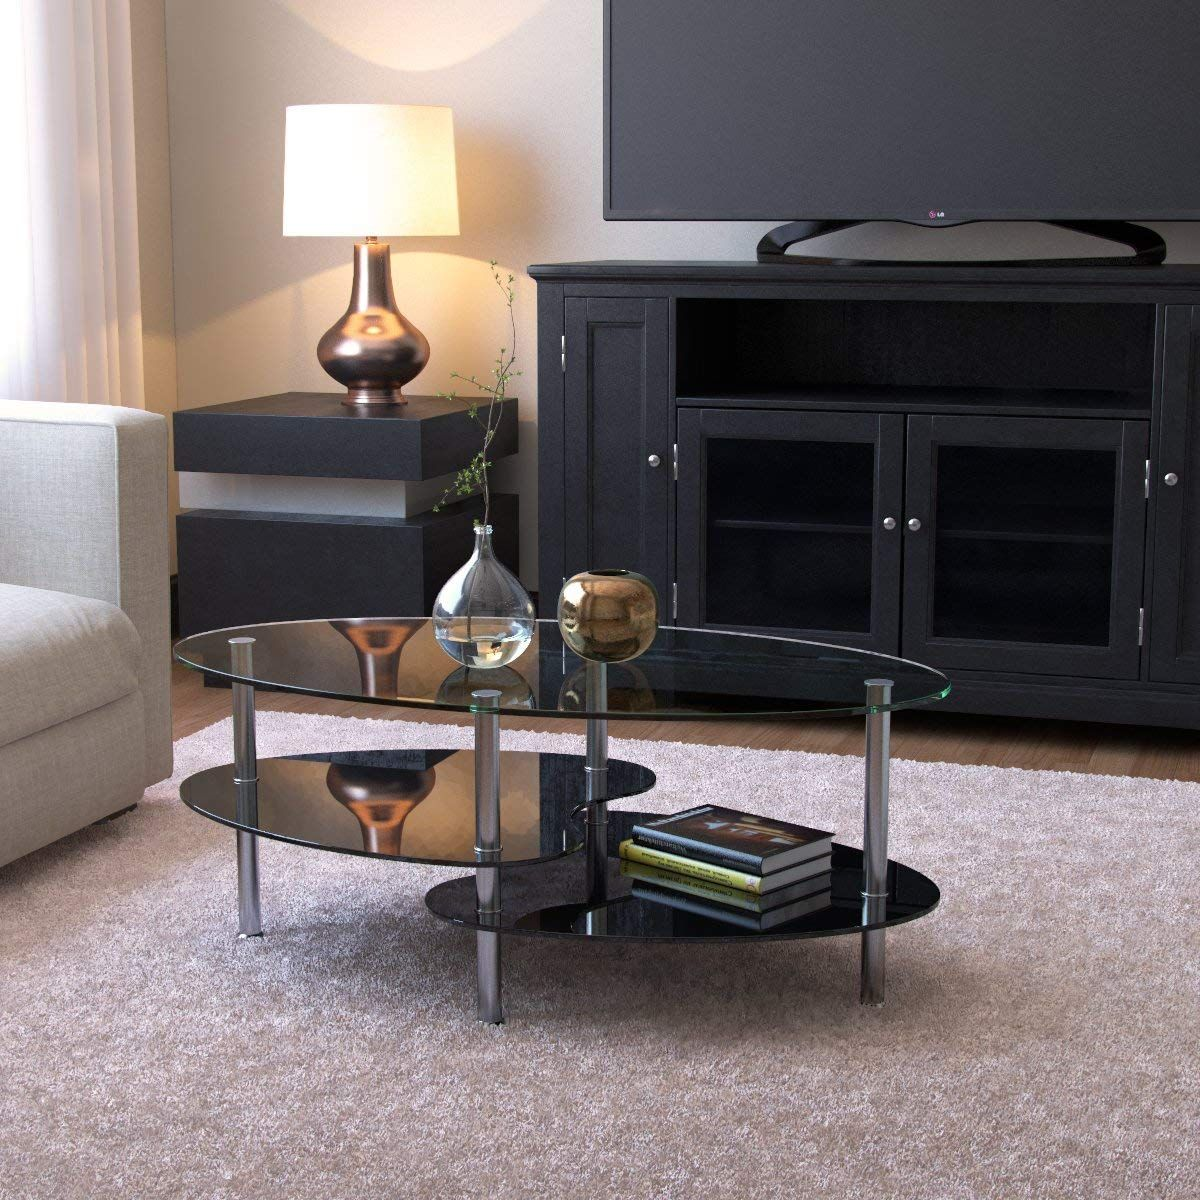 Amazon Com Ryan Rove Orion 38 Inch Modern Oval Two Tier Clear And Black Glass Coffee Table Clear Coffee Table Black Glass Coffee Table Coffee Table Vintage [ 1200 x 1200 Pixel ]